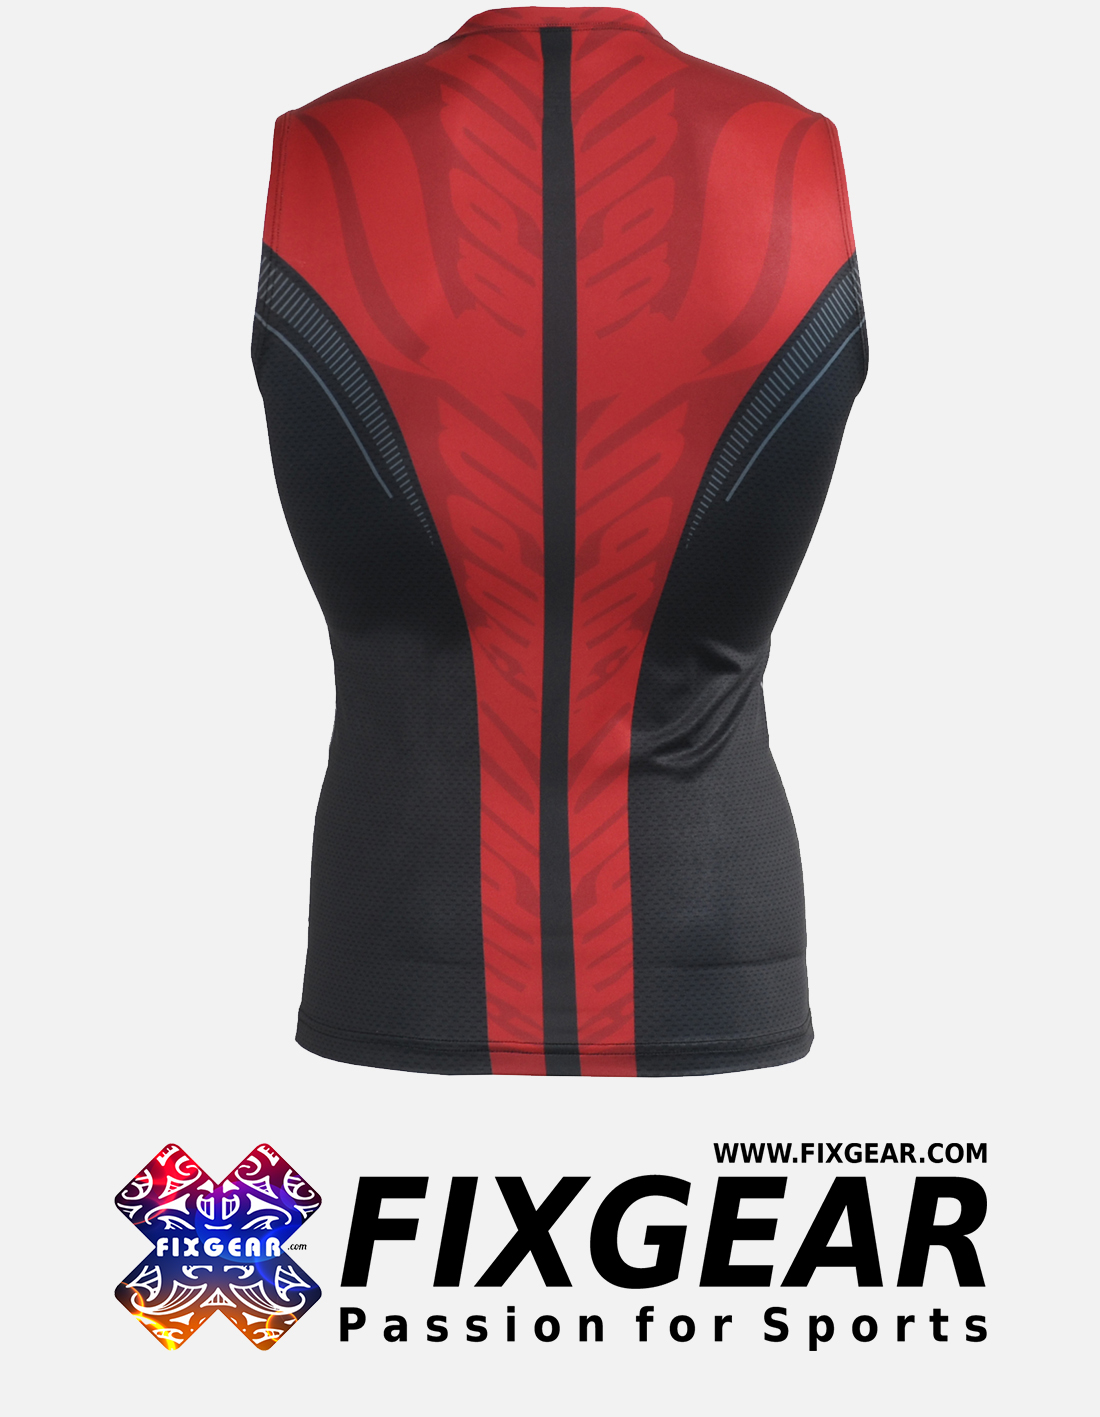 FIXGEAR CFN-H72 Compression Base Layer Sleeveless Shirt